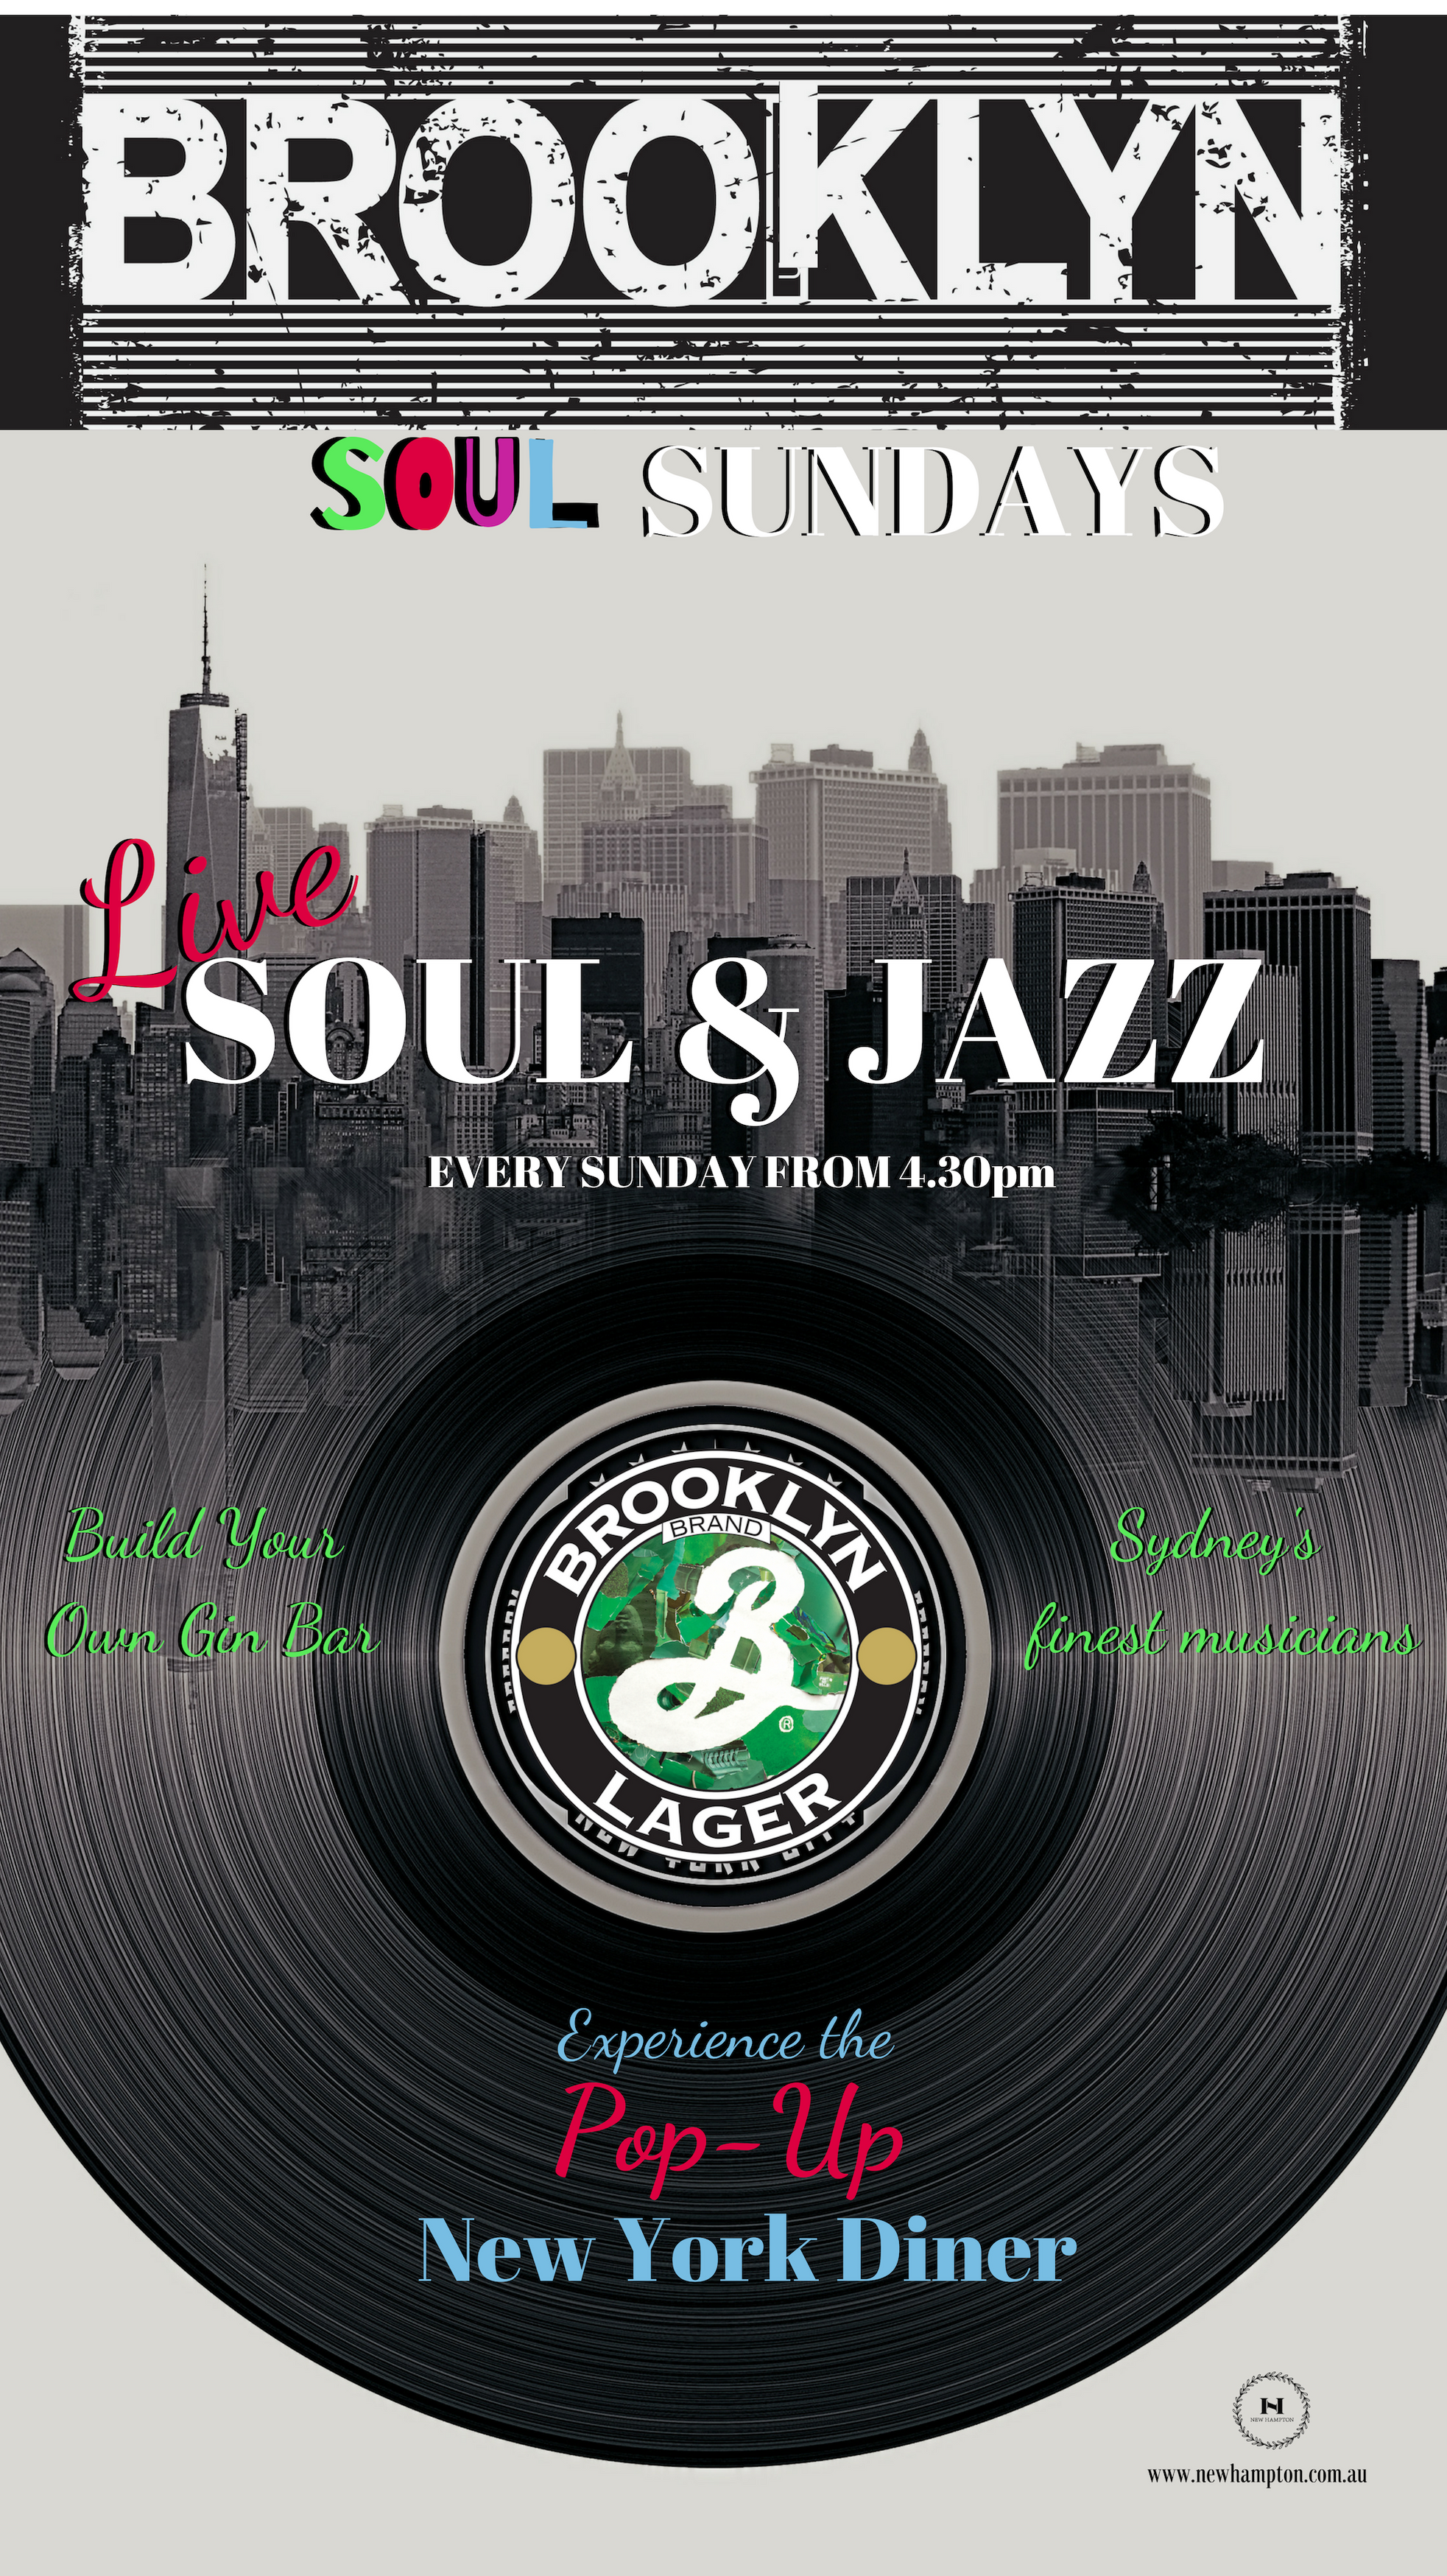 Brooklyn Soul Sundays - Pints of Brooklyn Larger $10, live soul and jazz bands and musicians, and world famous Ktaz Ruben sandwiches. Come kick back Sunday arvo'a at The New Hampton